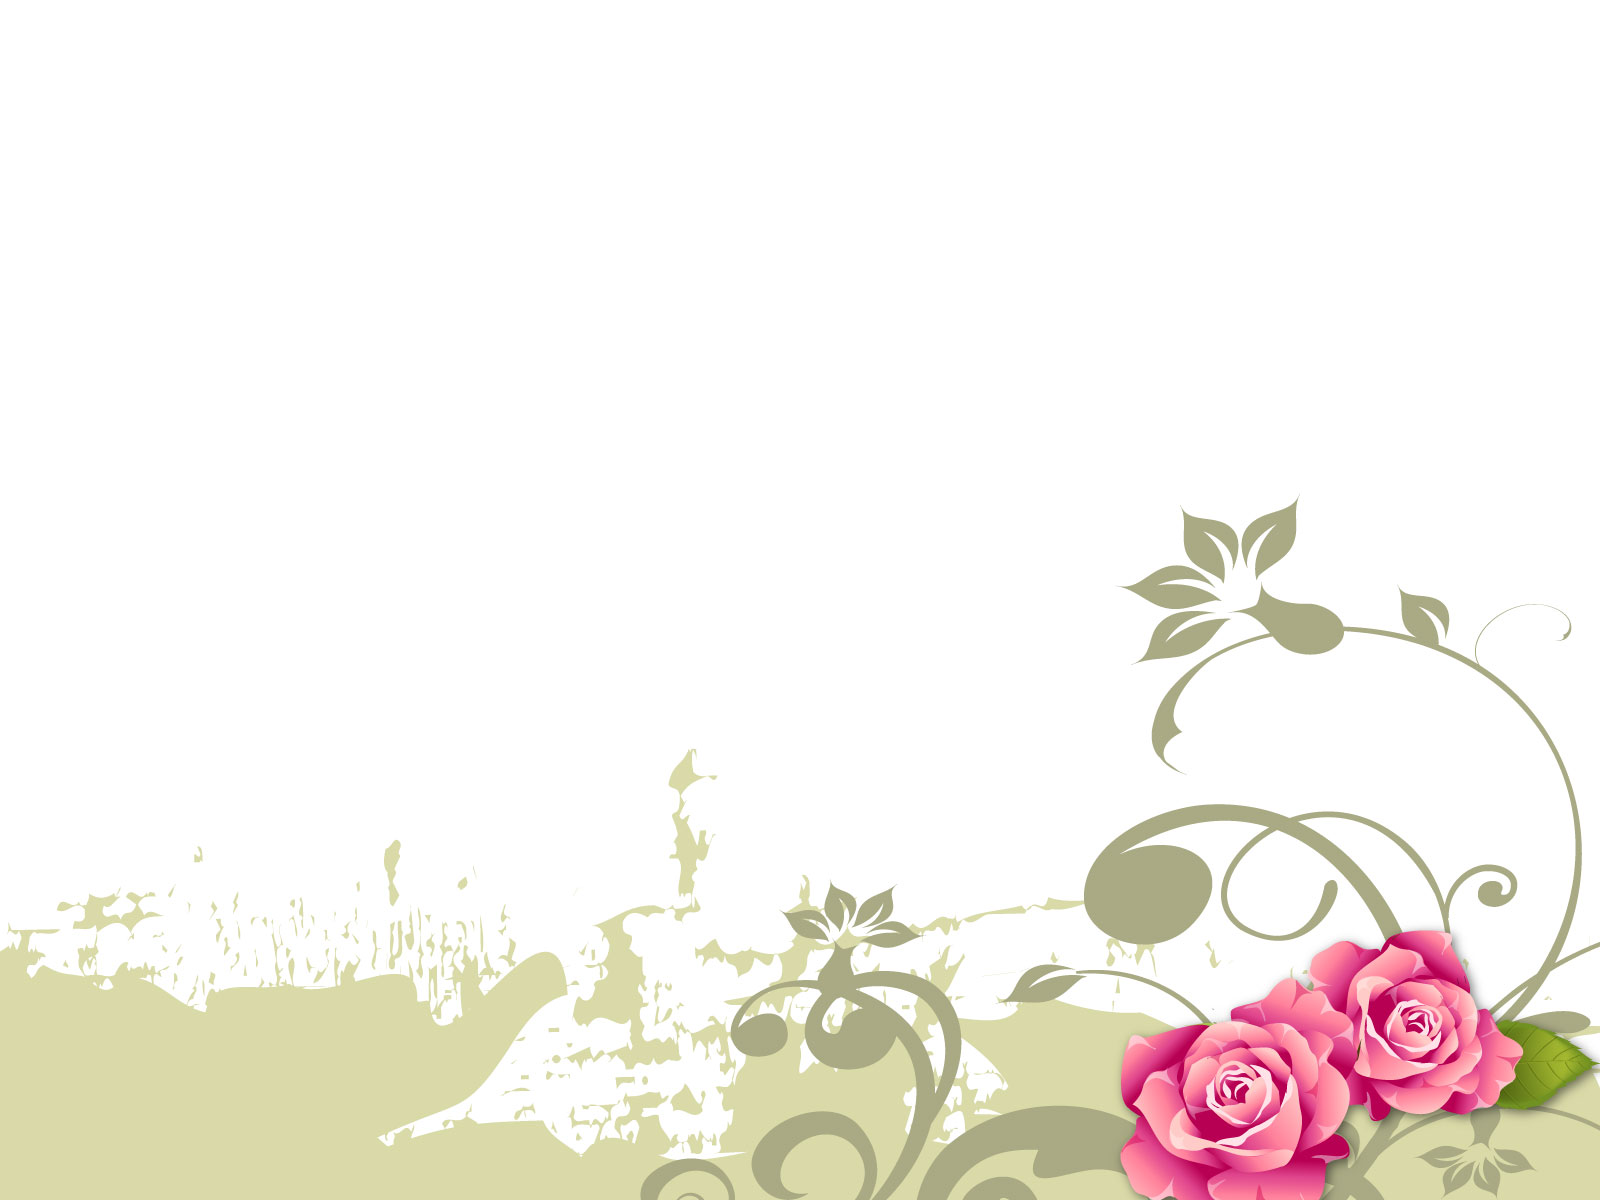 Flower Images Free Download Background 2 HD Wallpapers